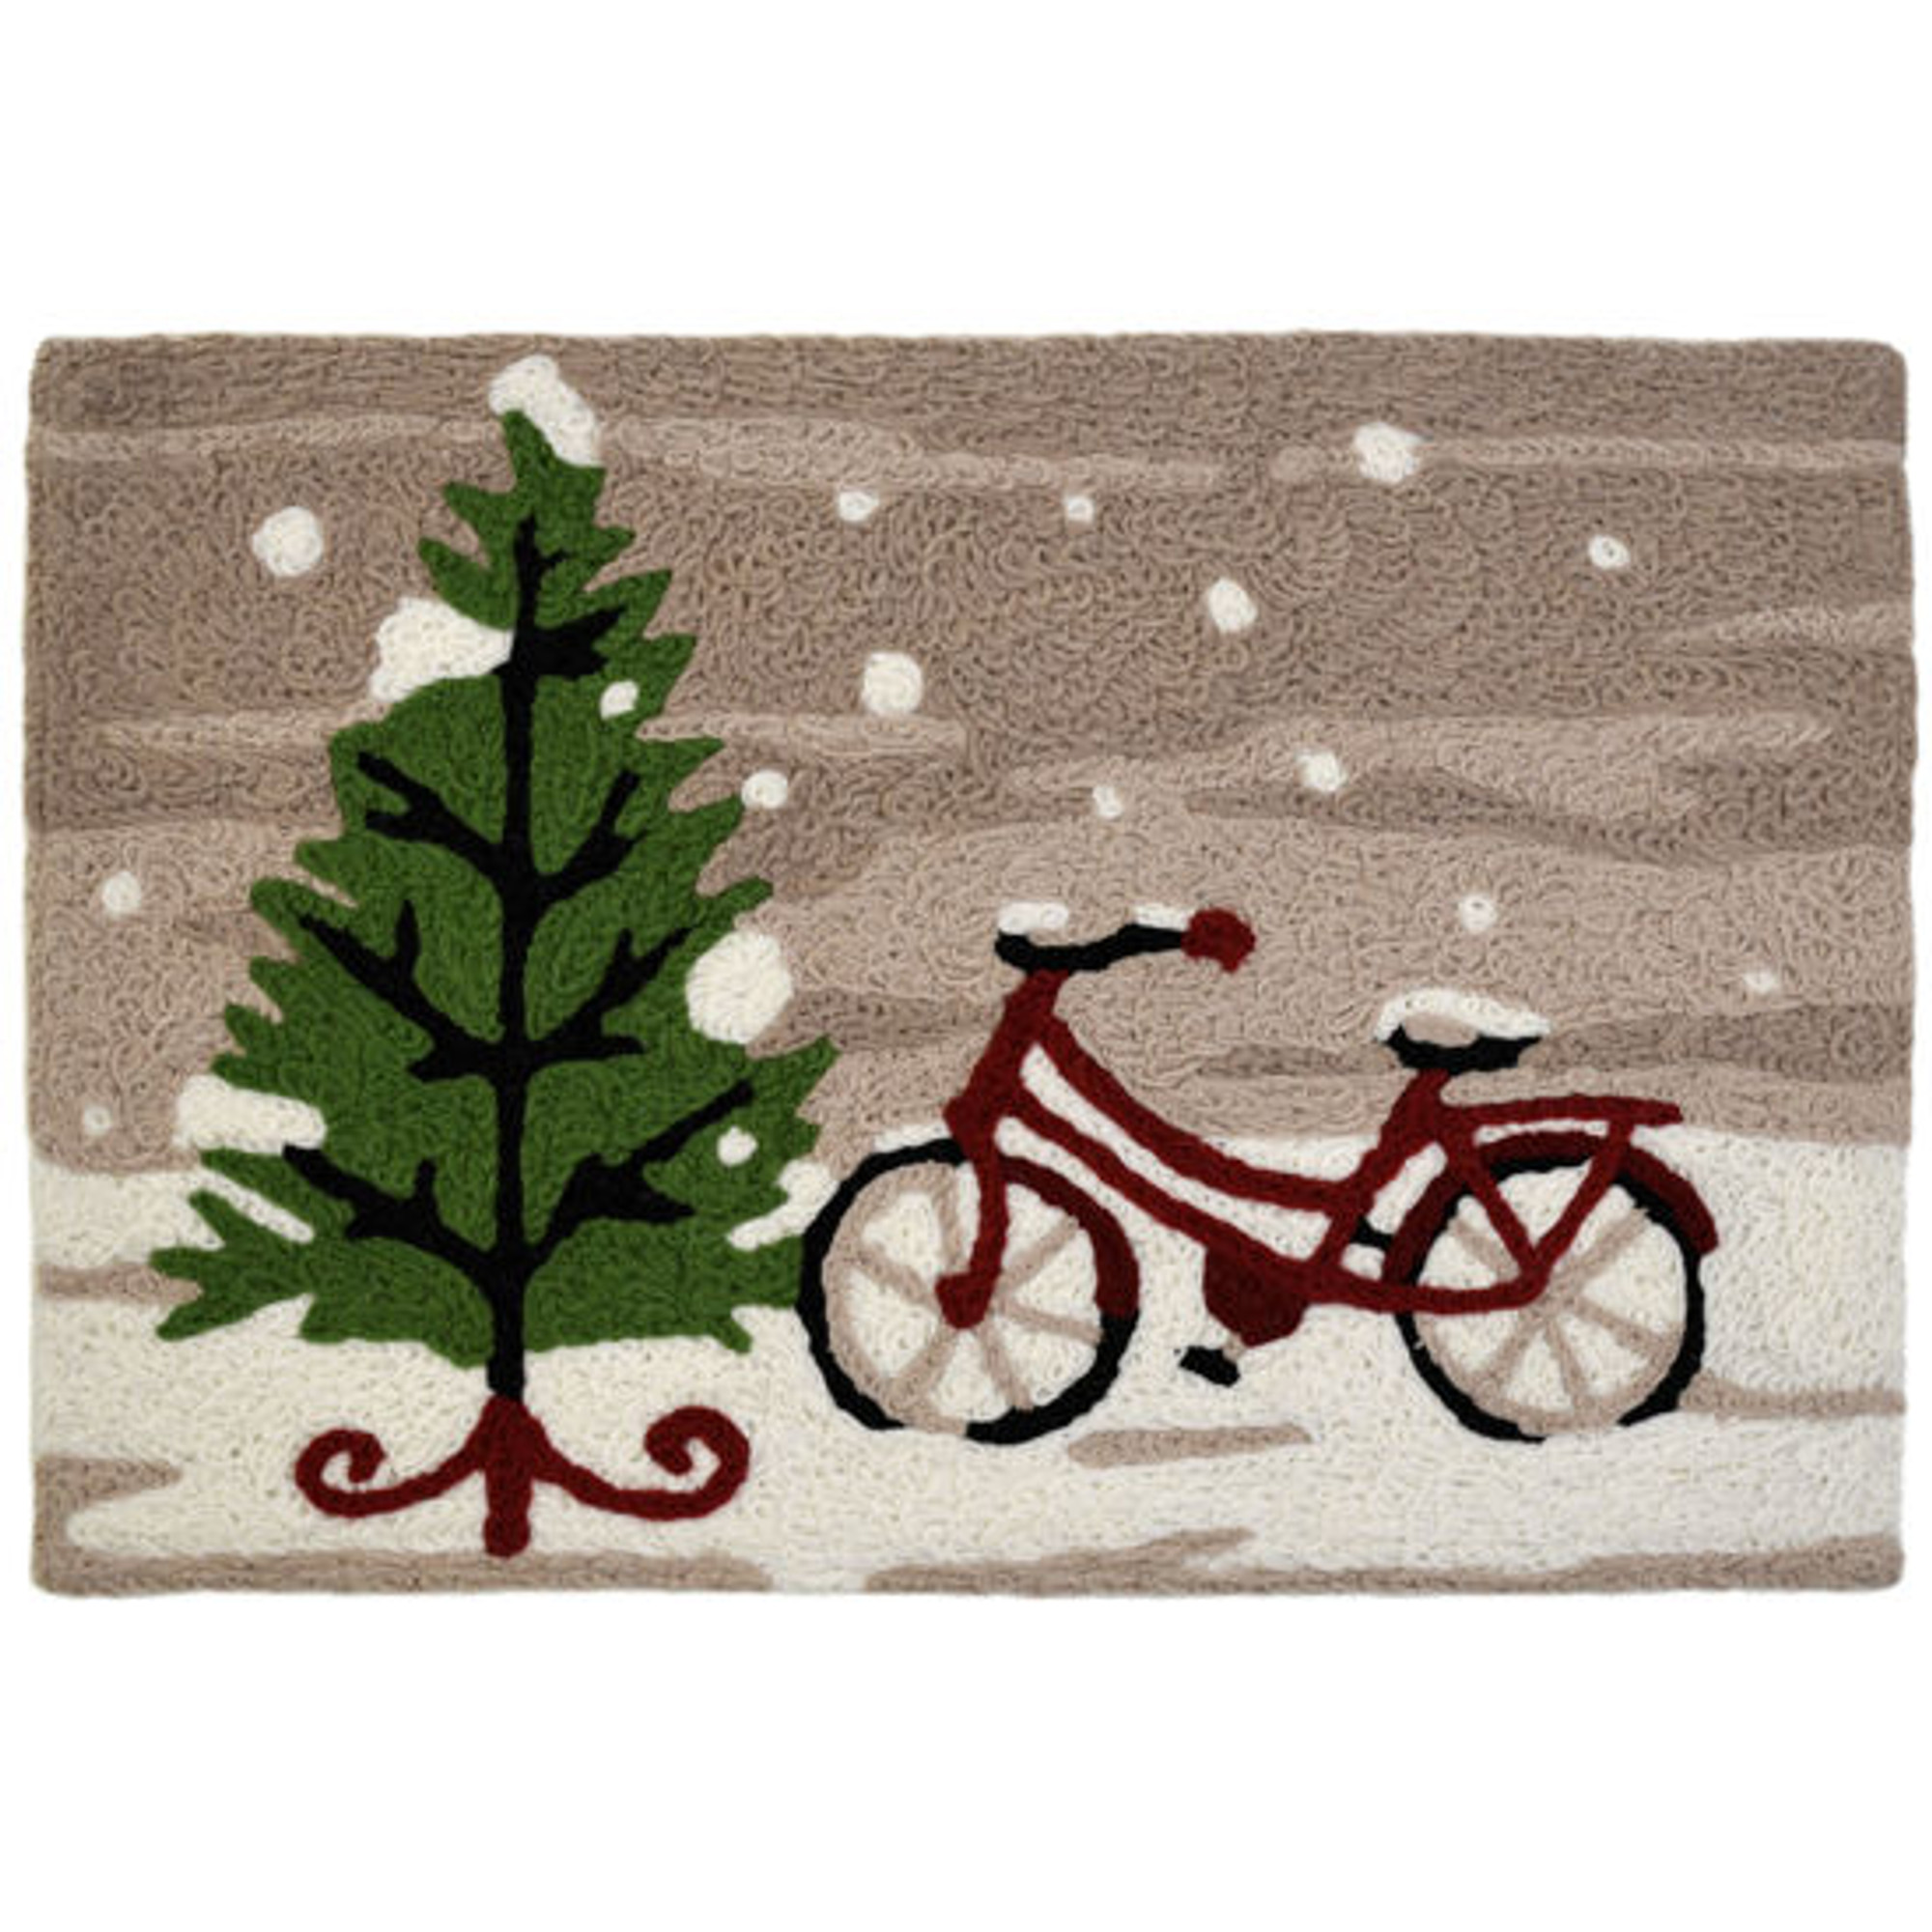 Cycling Home For Christmas Rug Tree w/ Bicycle Rug 20 x 30 Jellybean Accent Rug